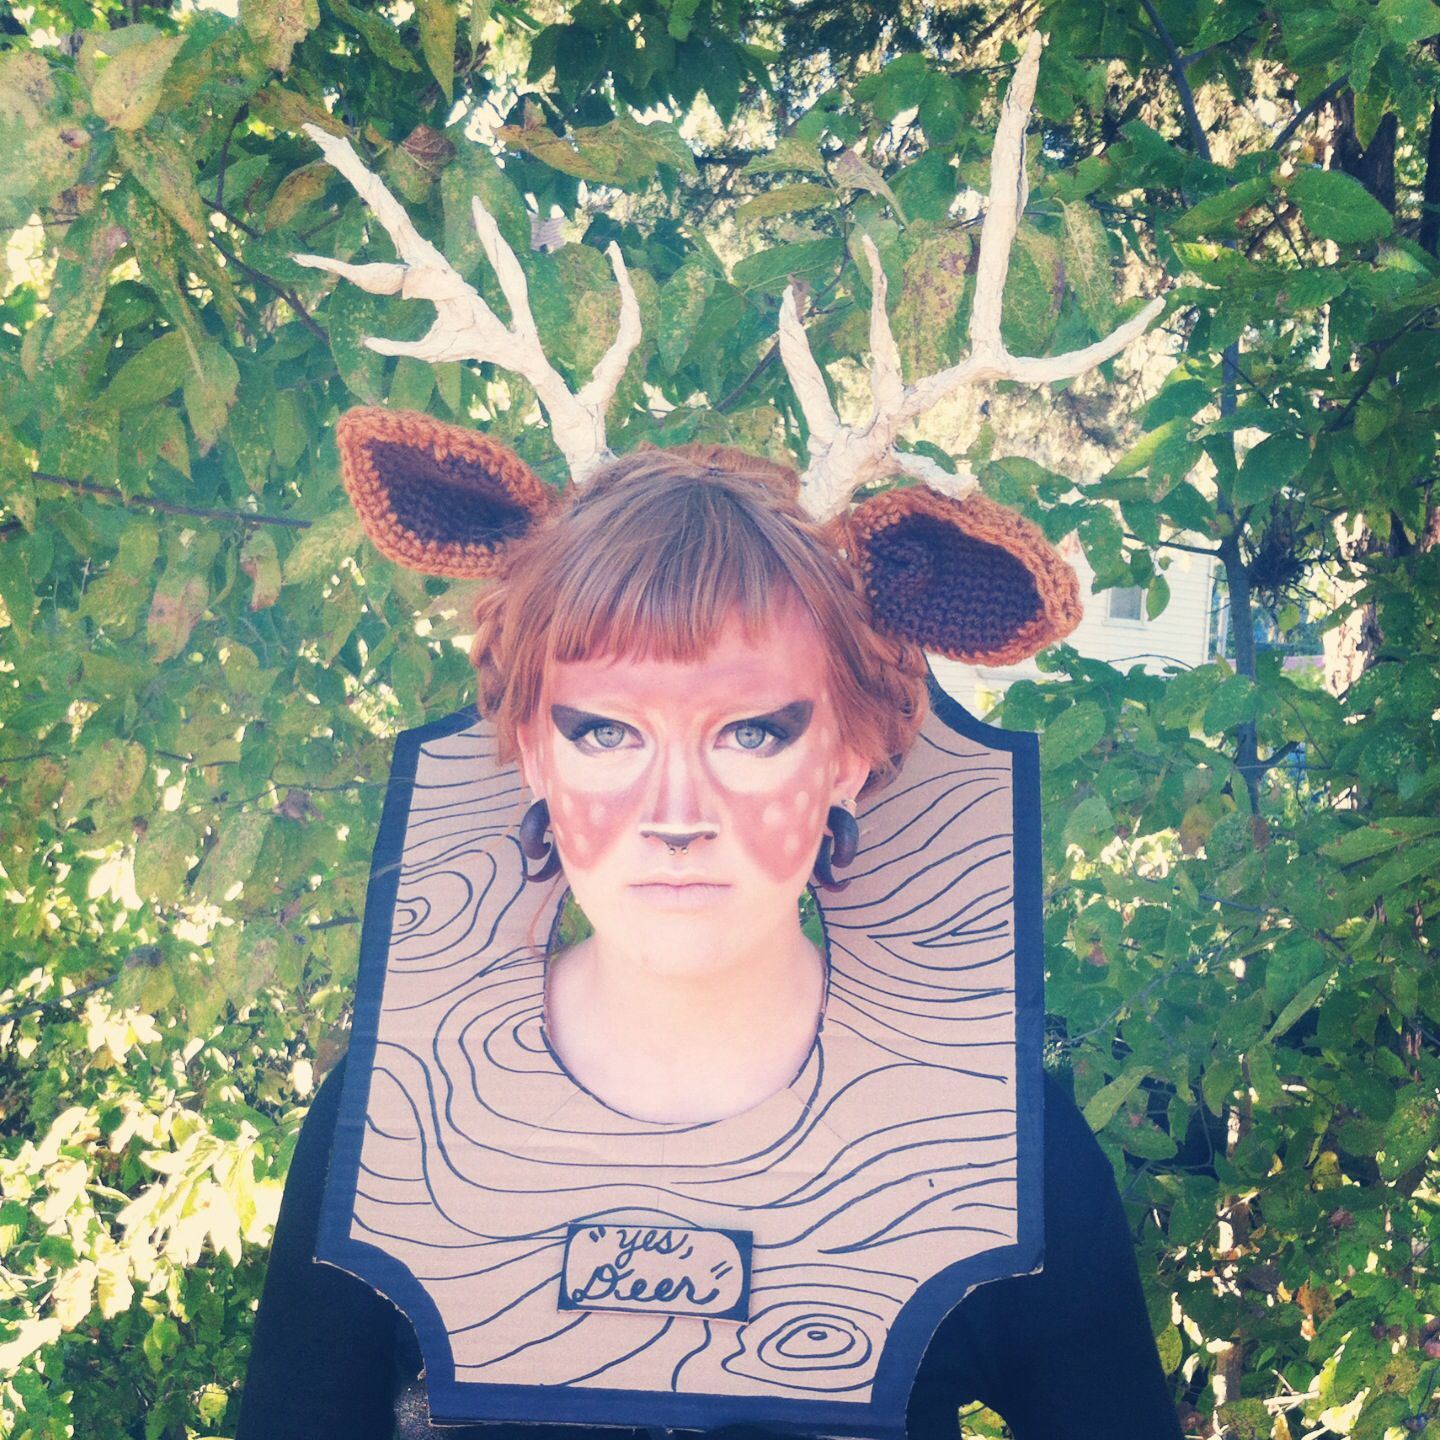 Taxidermy deer head costume antlers made from pipe cleaners and lots of inspiration diy makeup tutorials and all accessories you need to create your own diy taxidermy trophy costume for halloween solutioingenieria Images